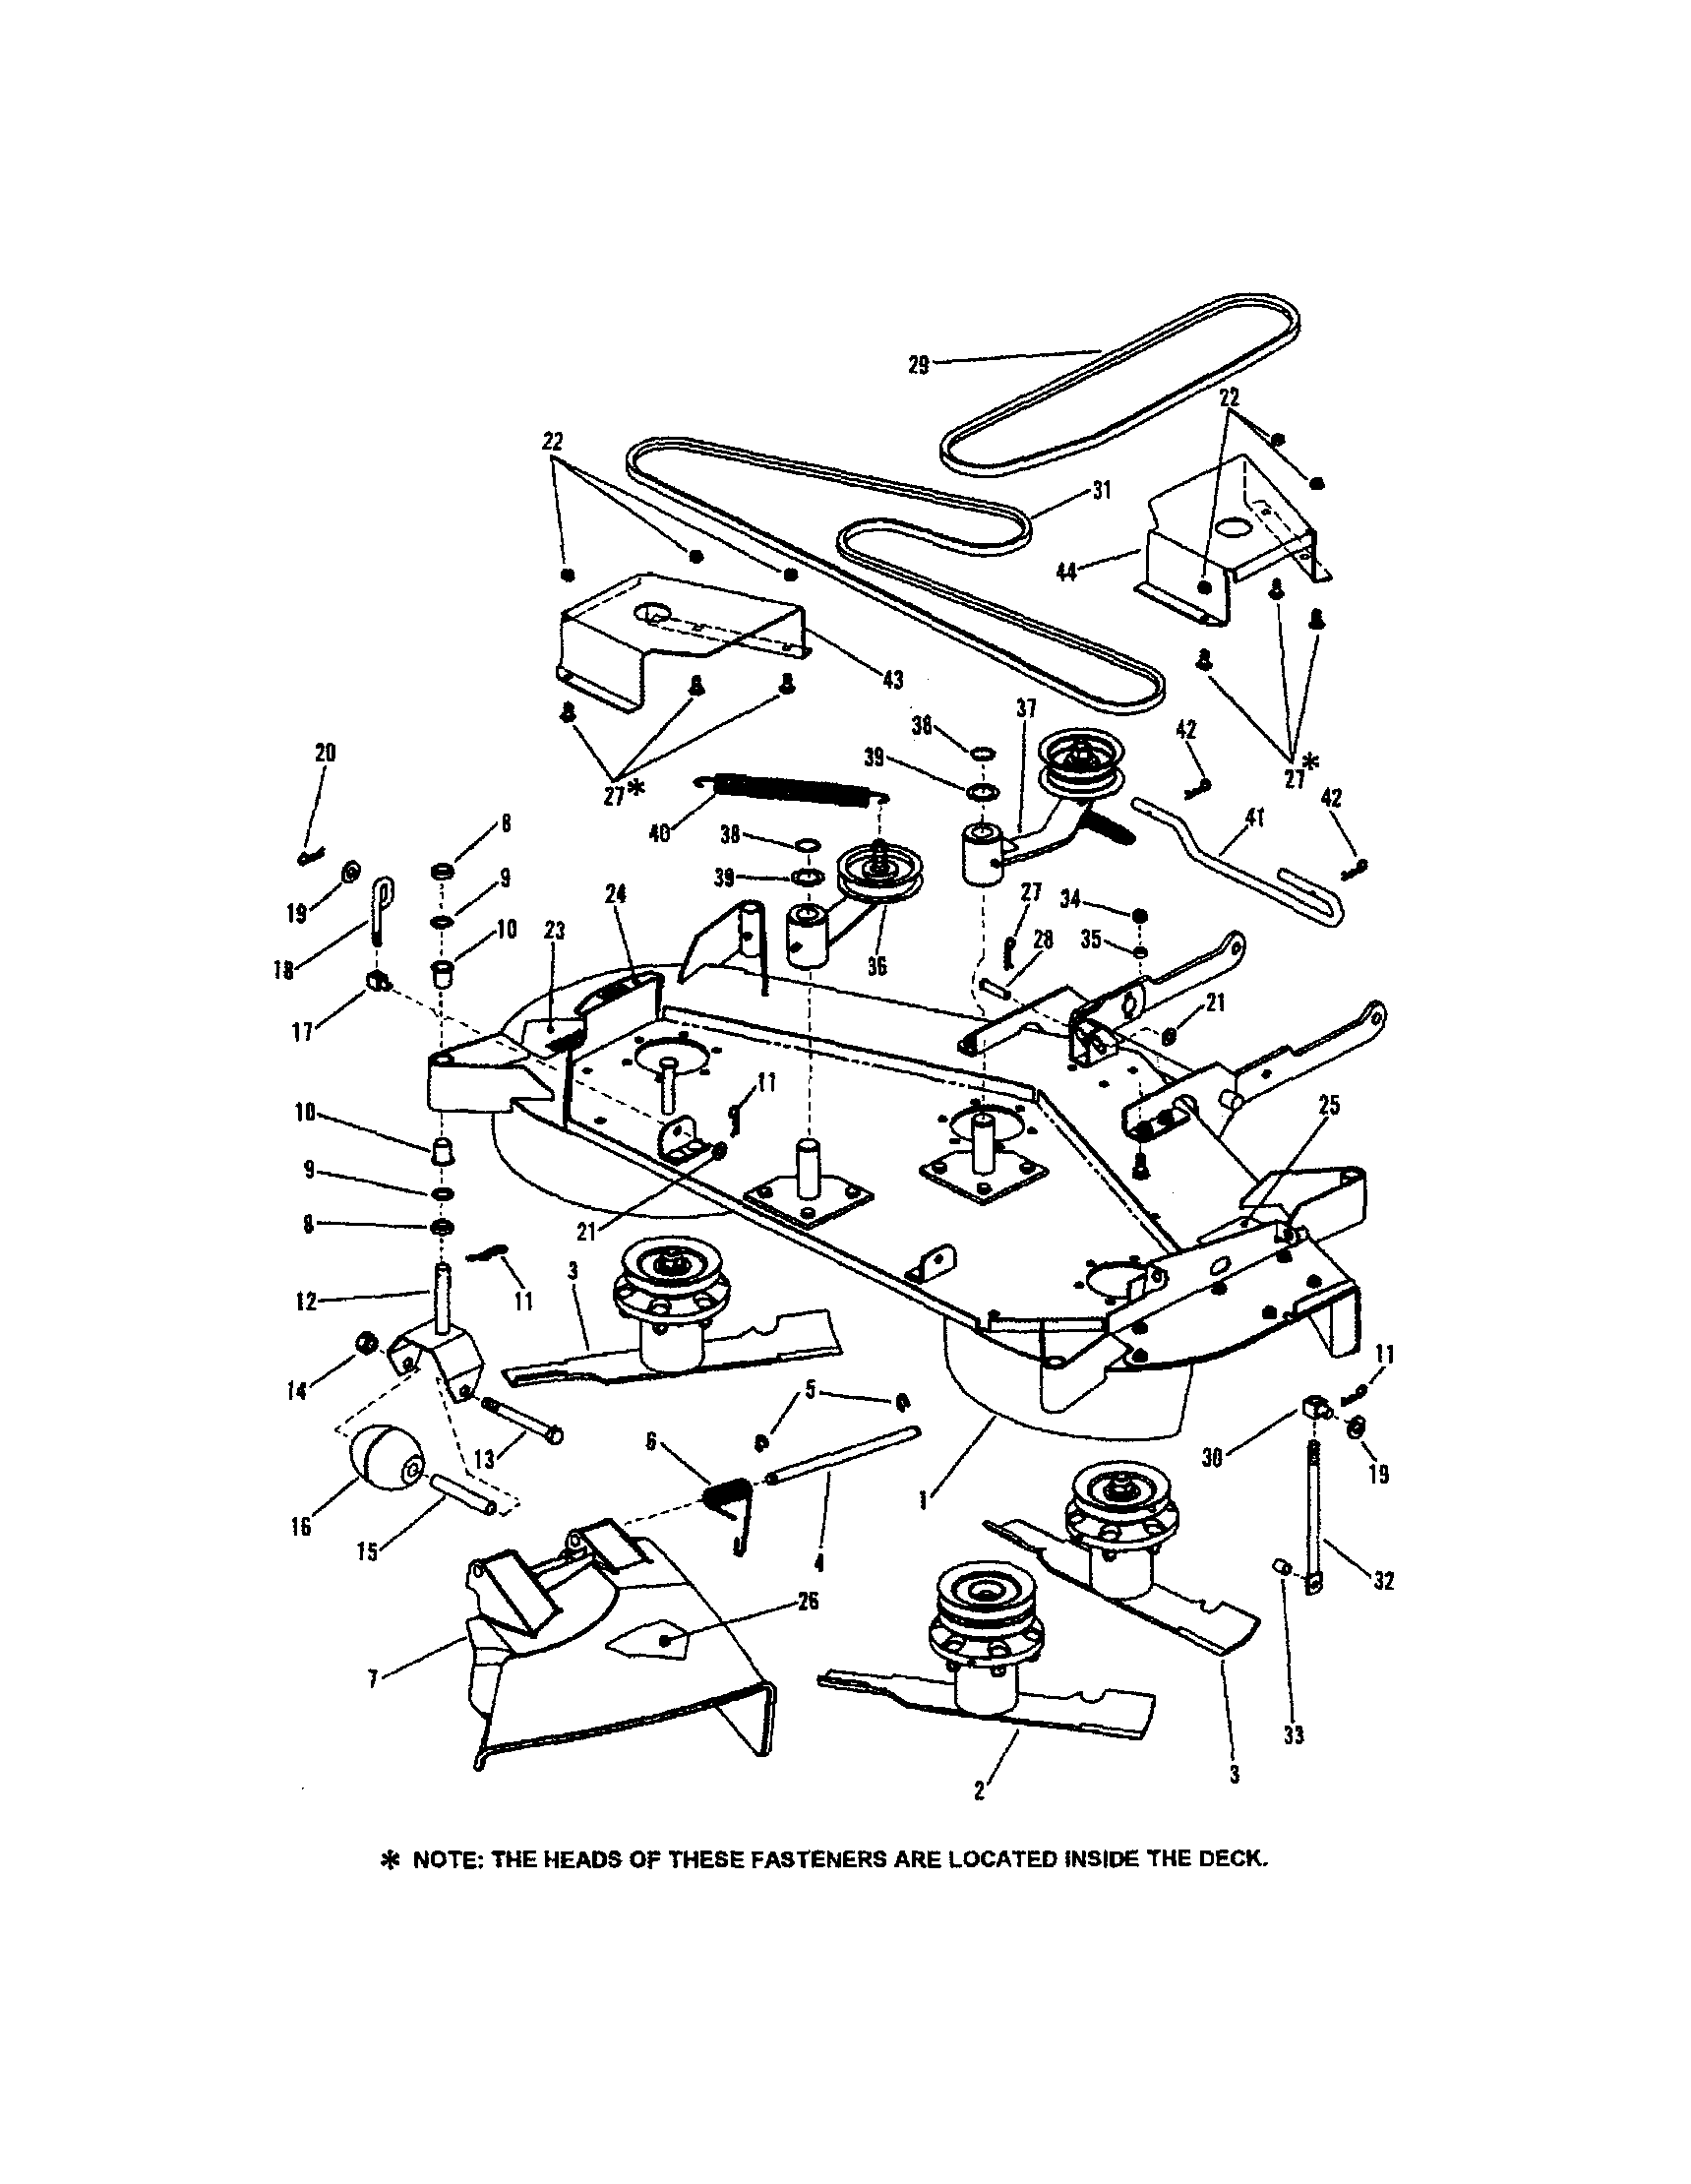 2006 Acura Mdx Drive Belt Diagram Wiring Diagrams